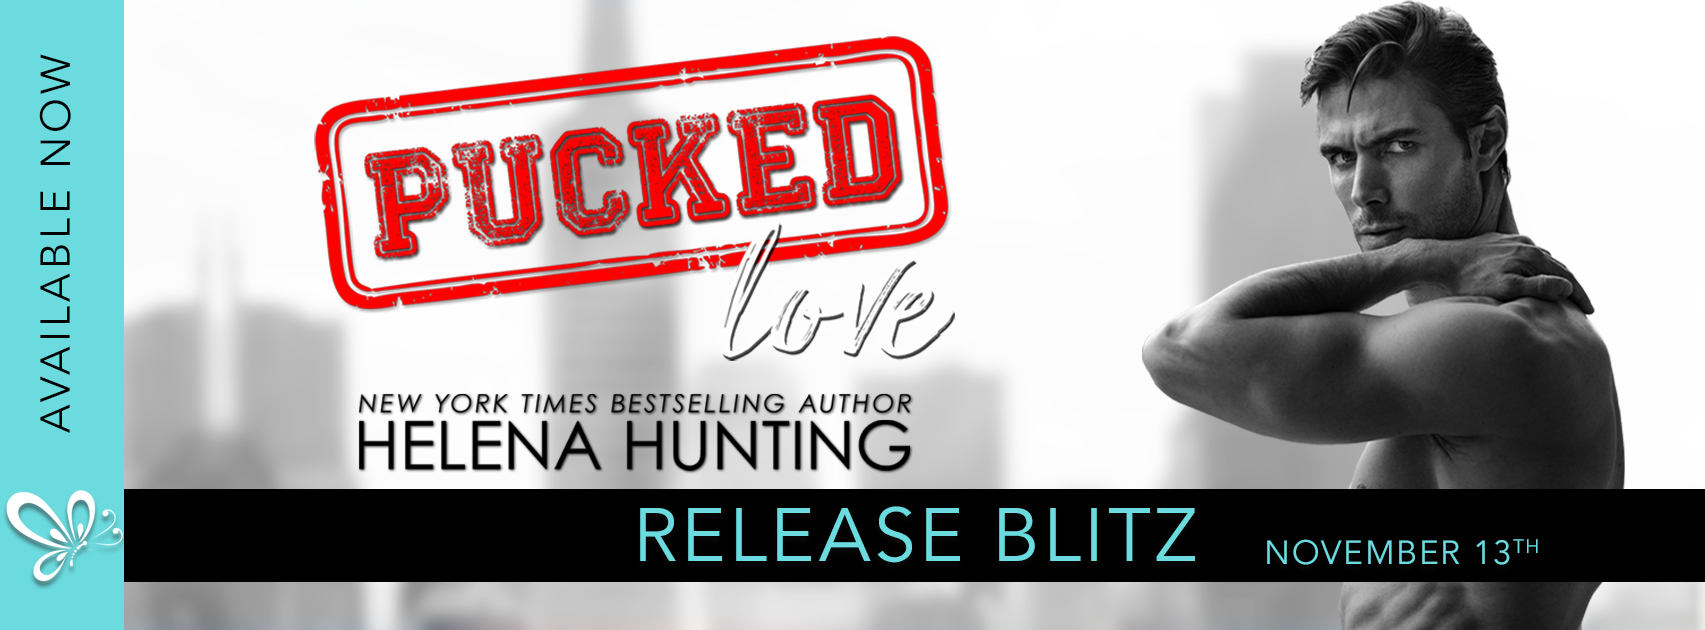 #ReleaseBlitz ~ Pucked Love ( Pucked #7) by Helena Hunting ~ #Review @HelenaHunting @jennw23 @